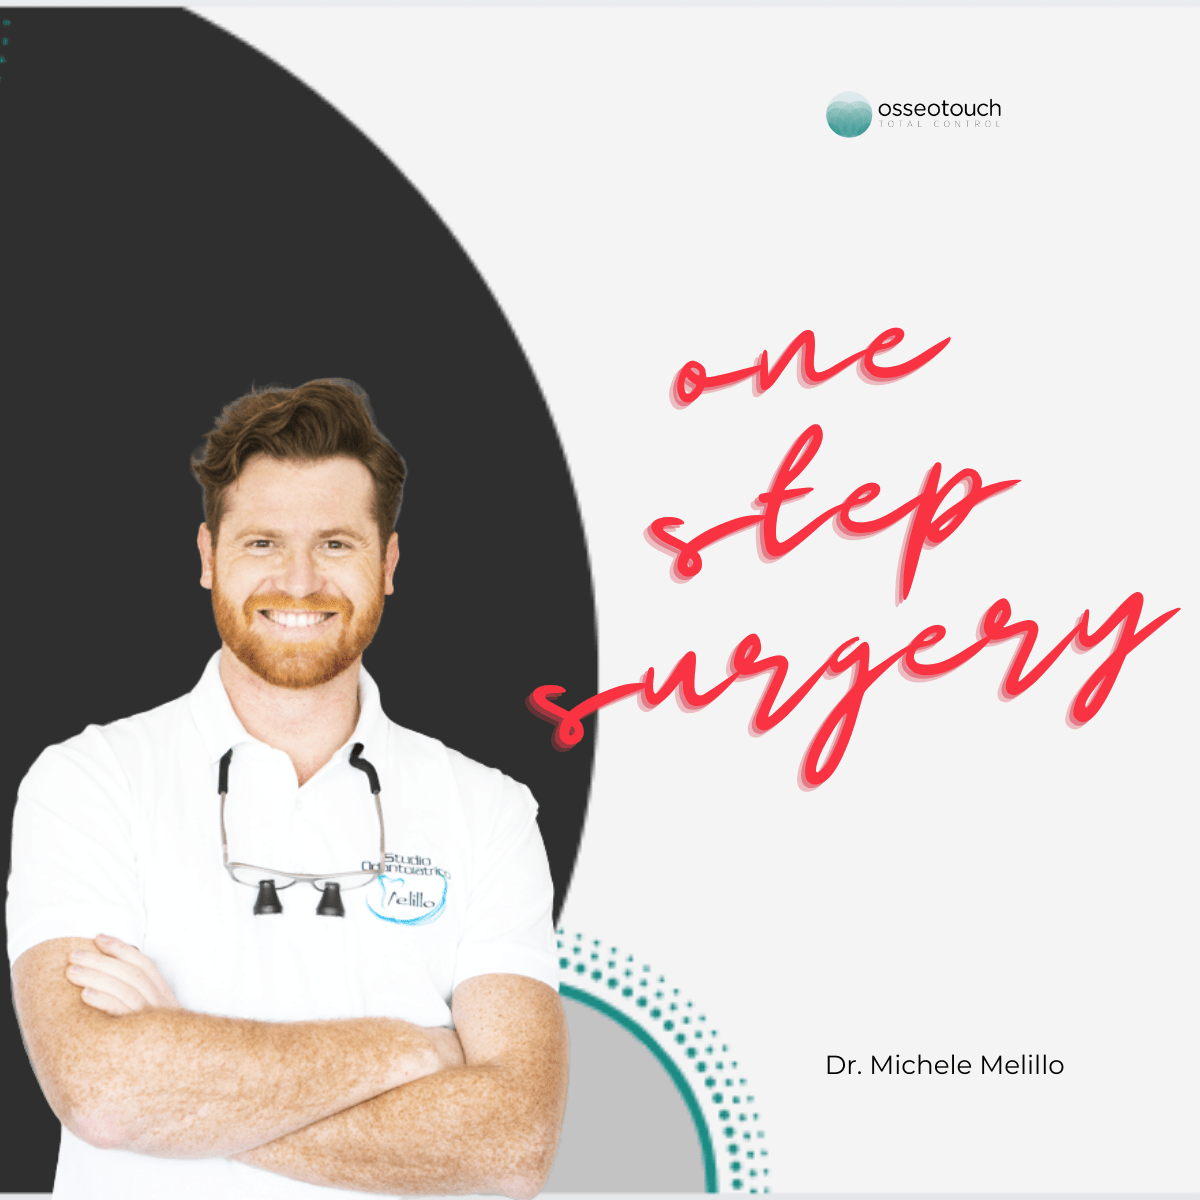 https://osseotouch.com/wp-content/uploads/2021/03/Copia-di-One-step-surgery-Melillo-2-min-min.png